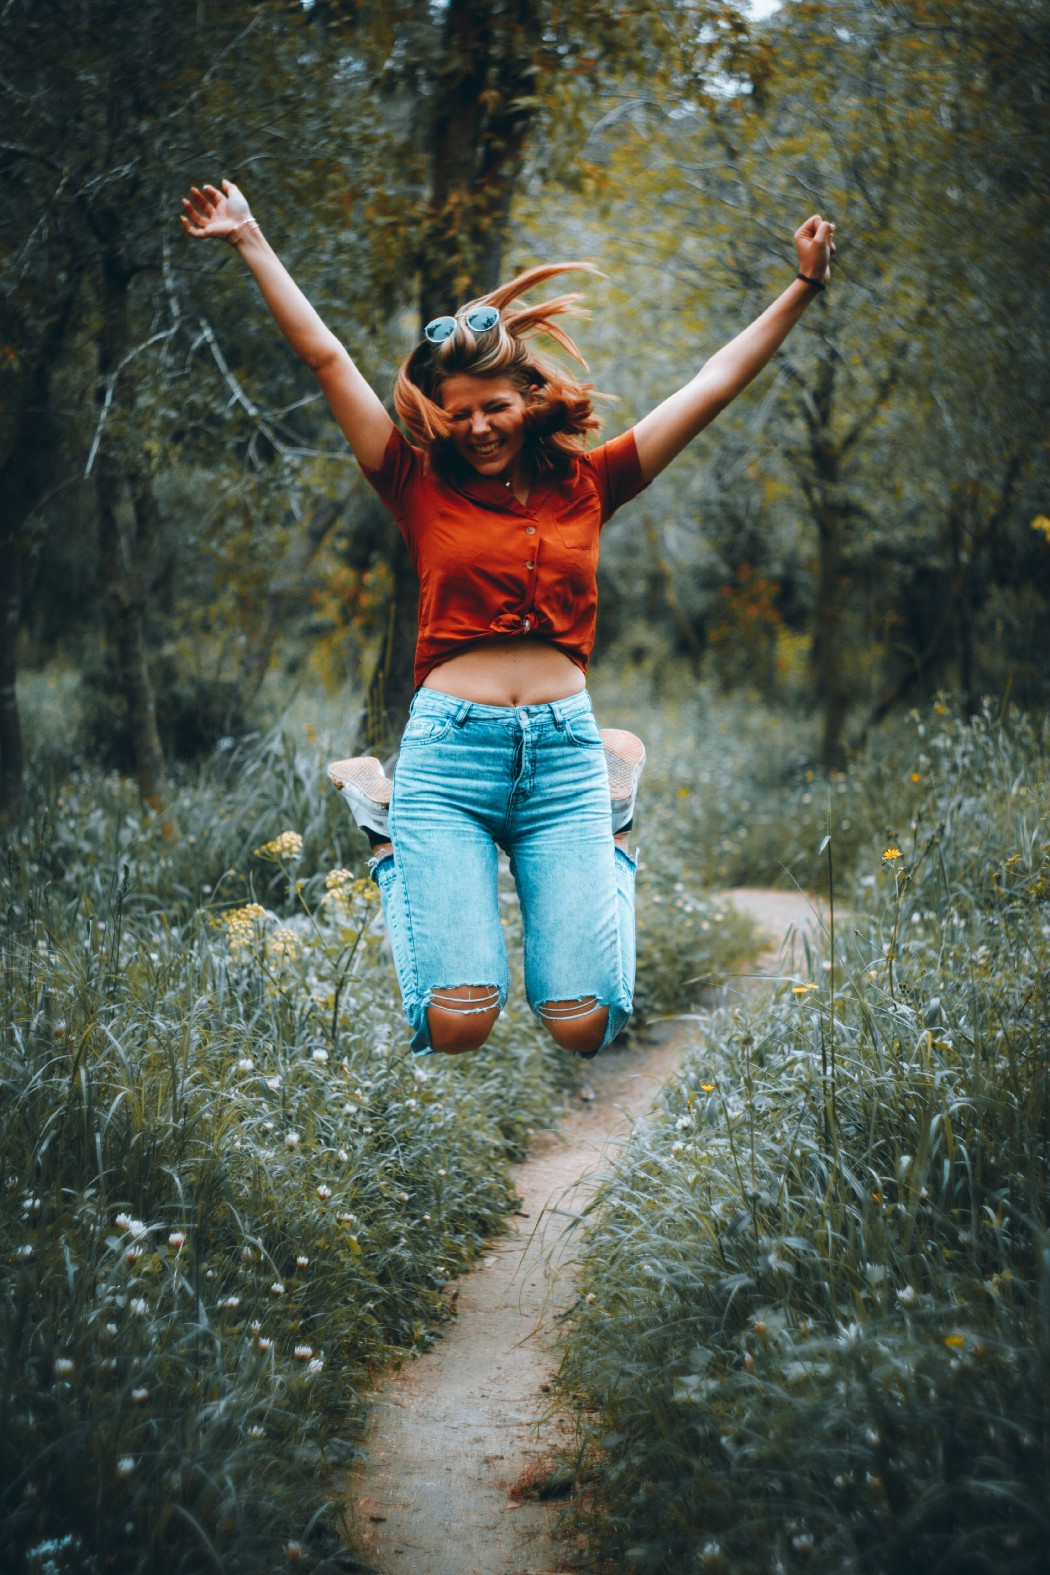 A woman jumps high and happily in the forest.